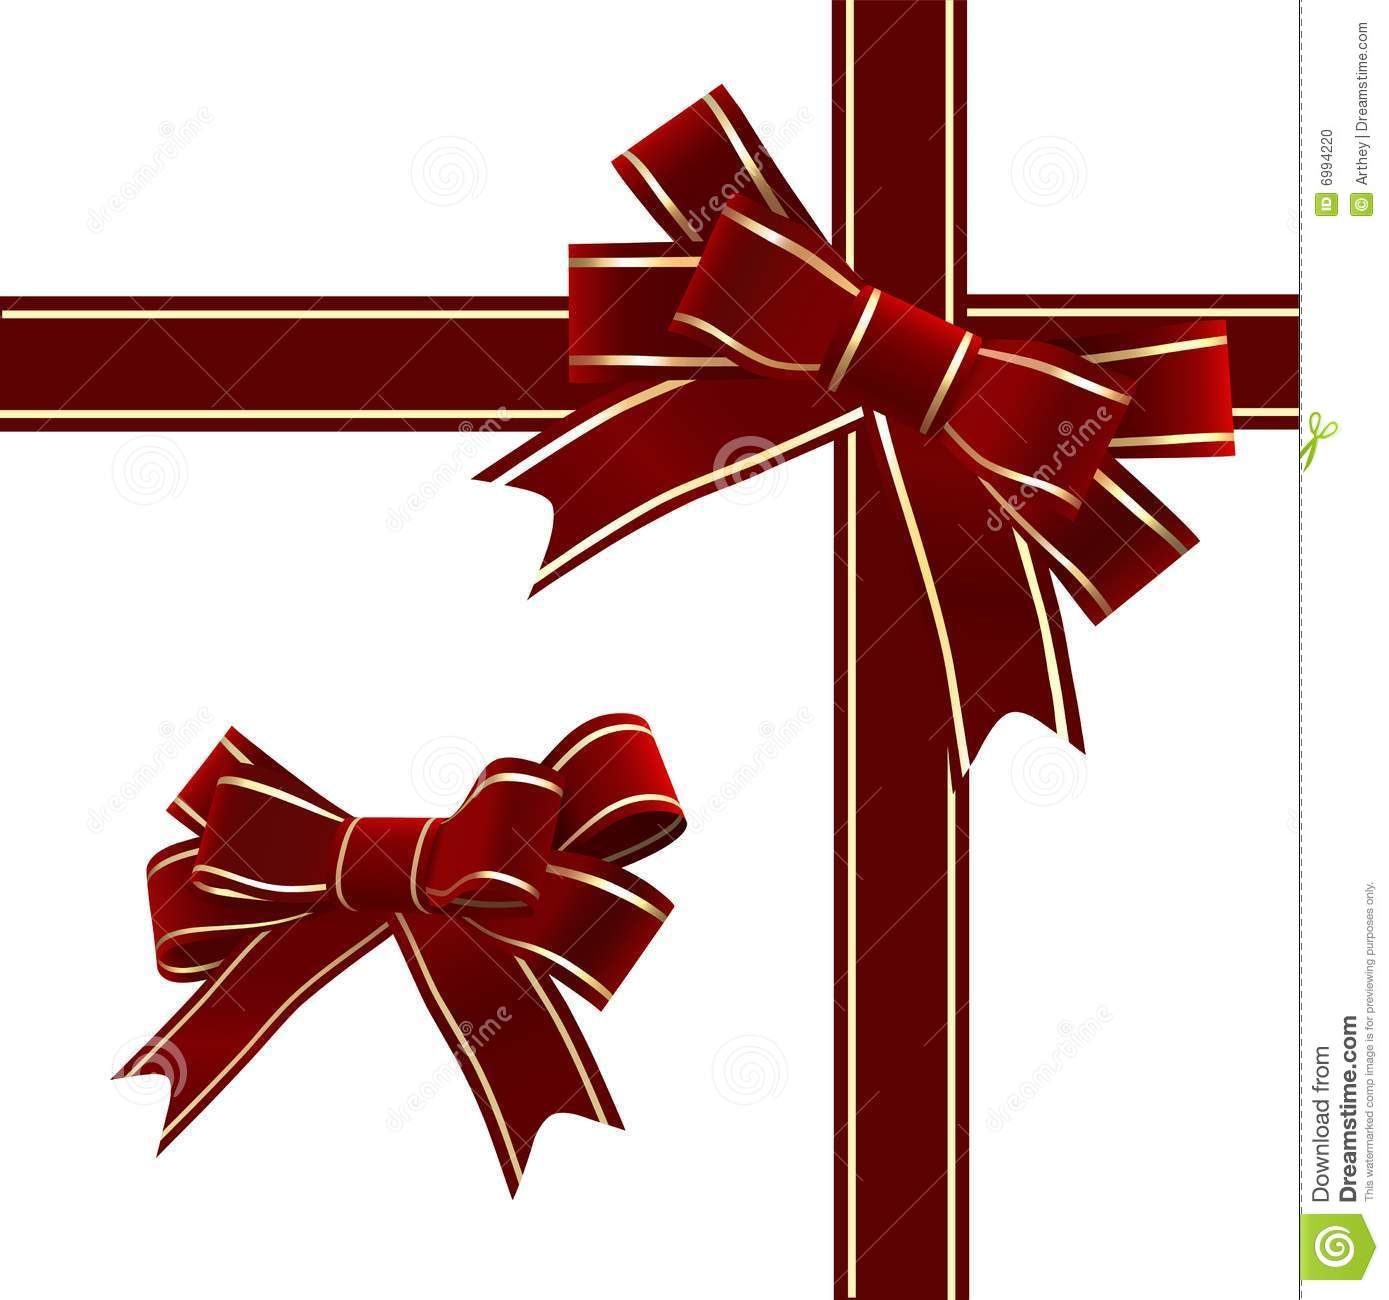 Vector christmas ribbon and bow images free